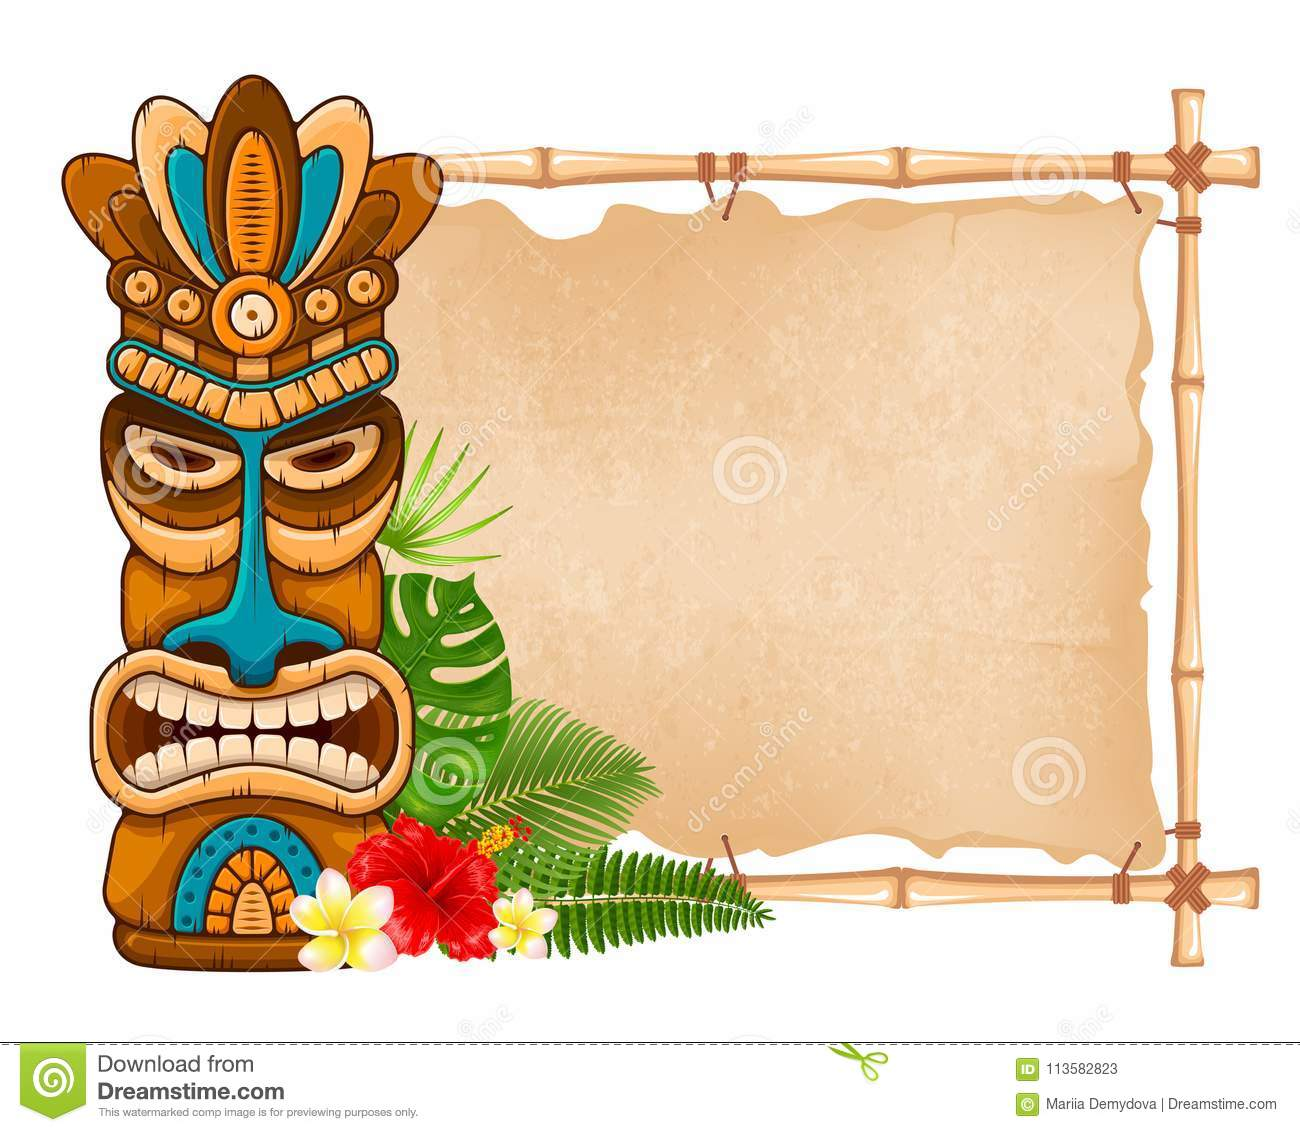 Wooden Tiki mask and bamboo signboard